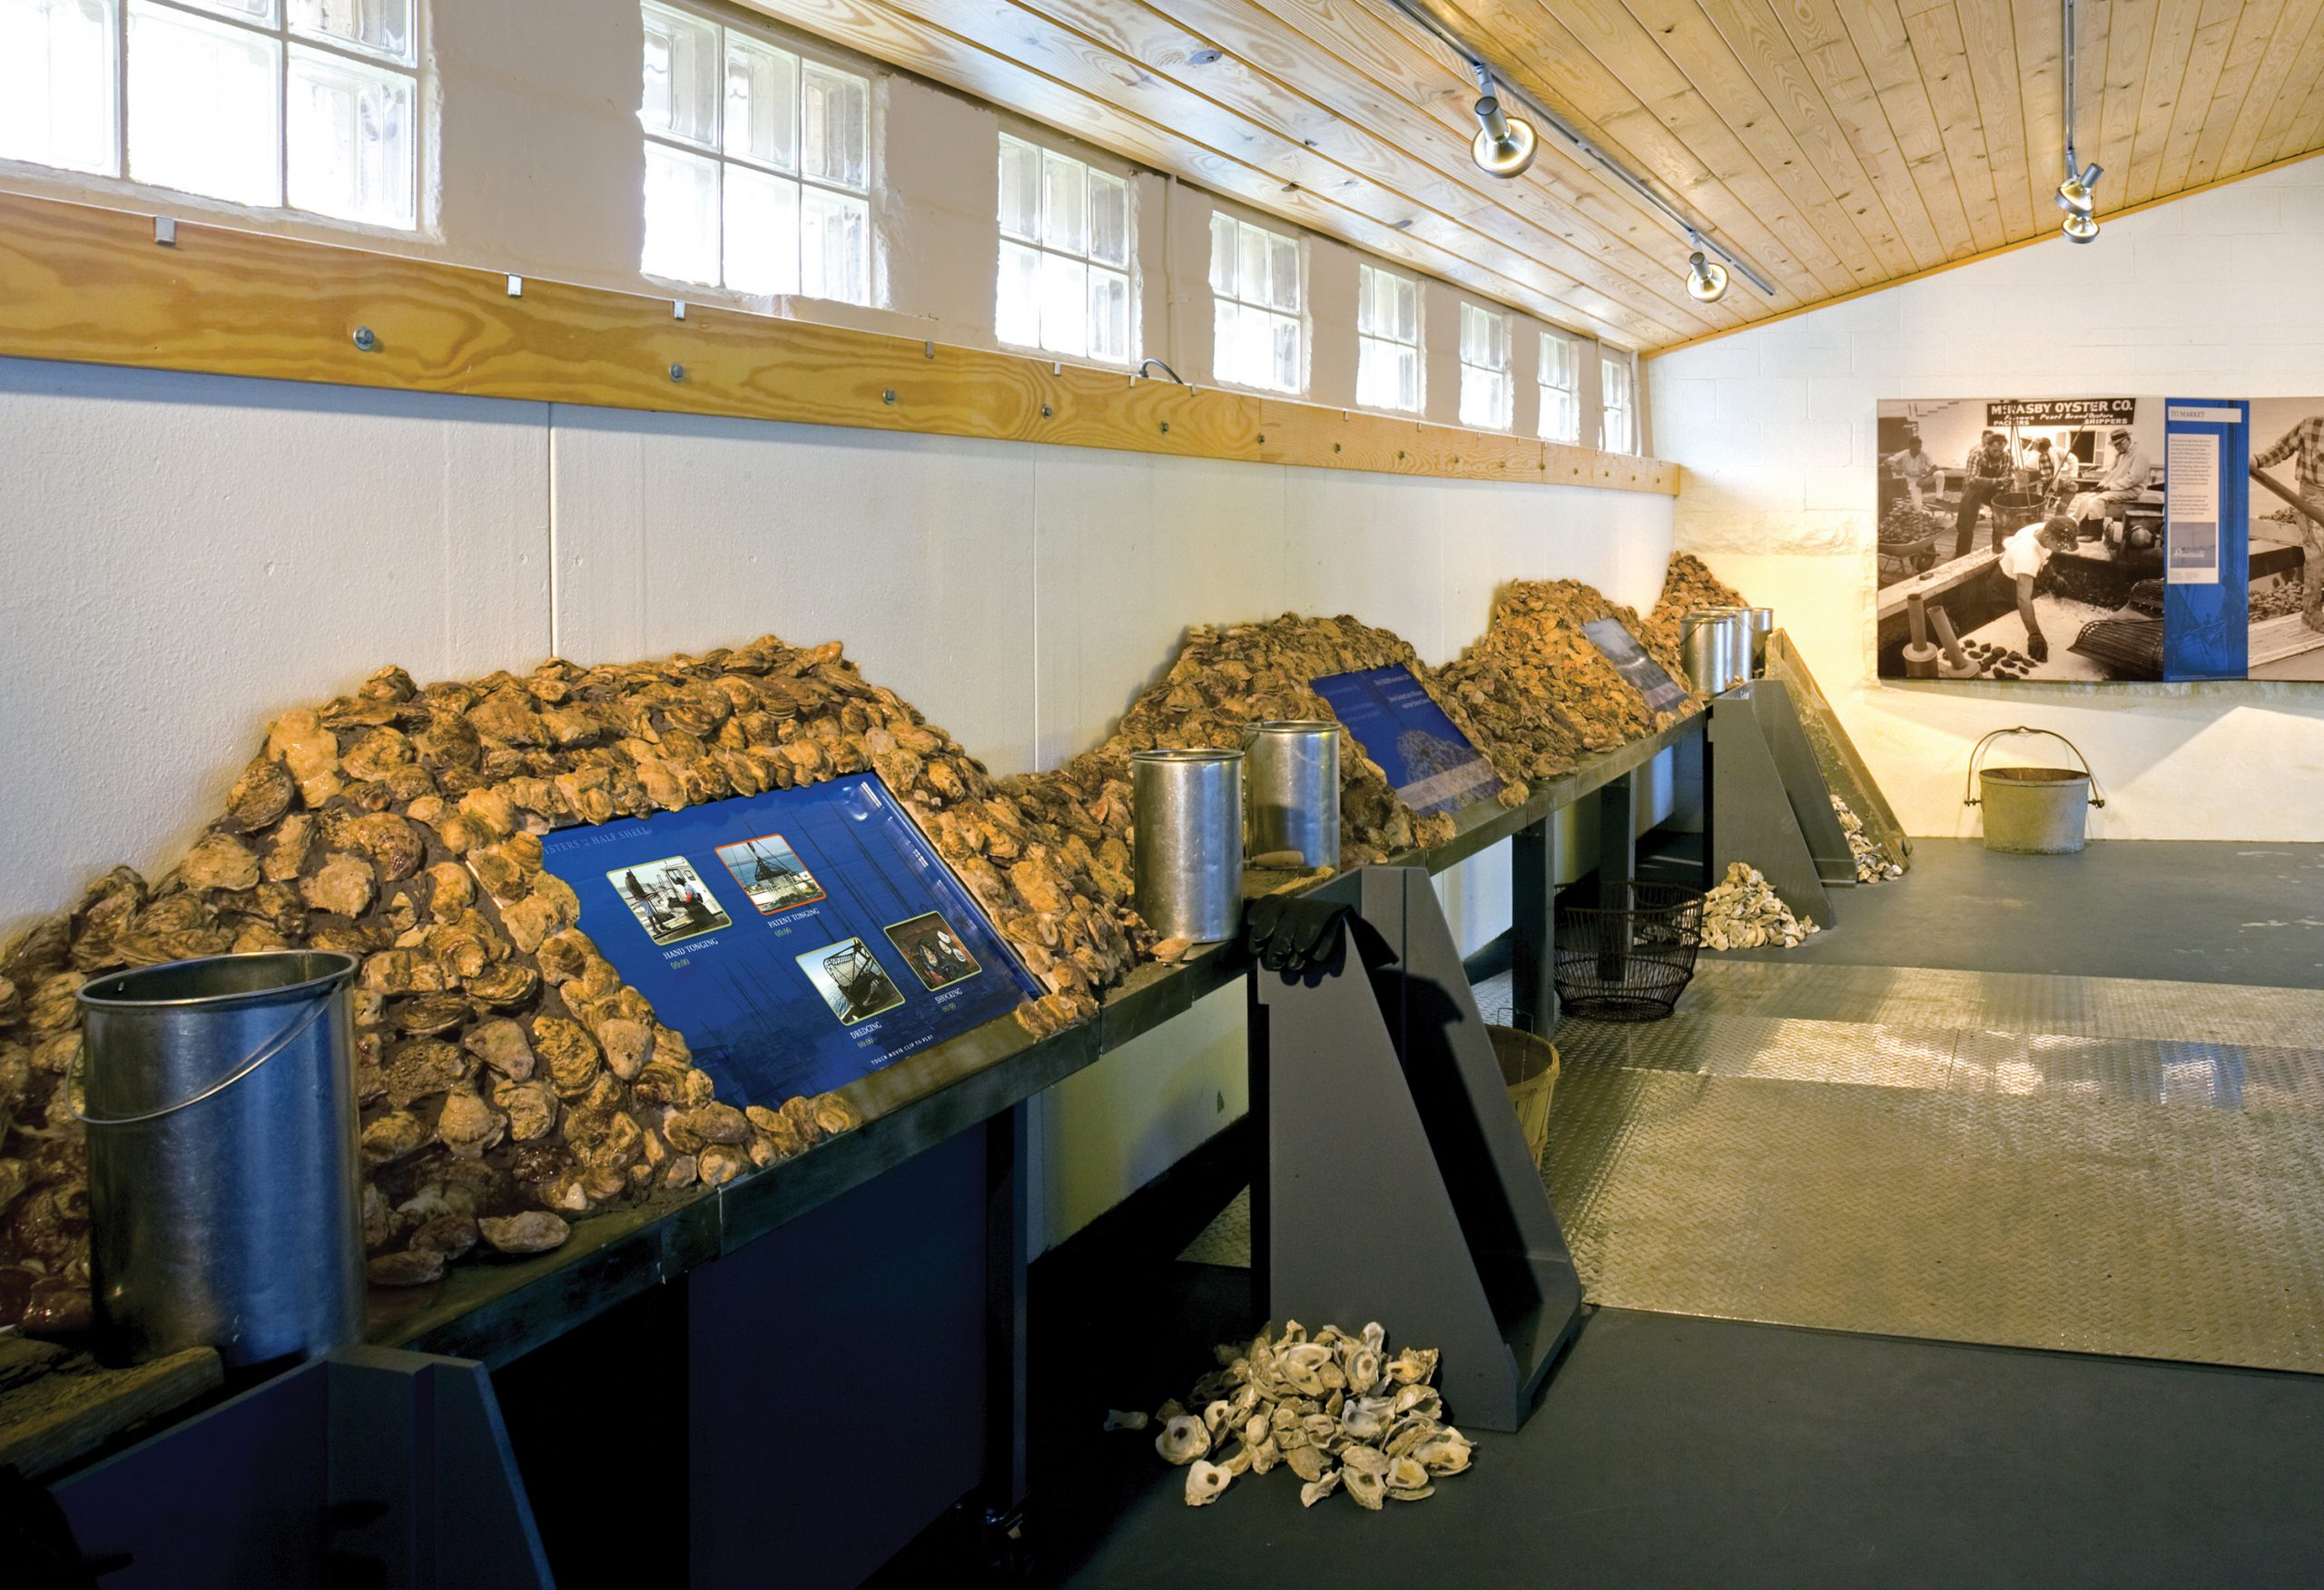 Project image 3 for Oysters on the Half Shell Exhibit, Annapolis Maritime Museum